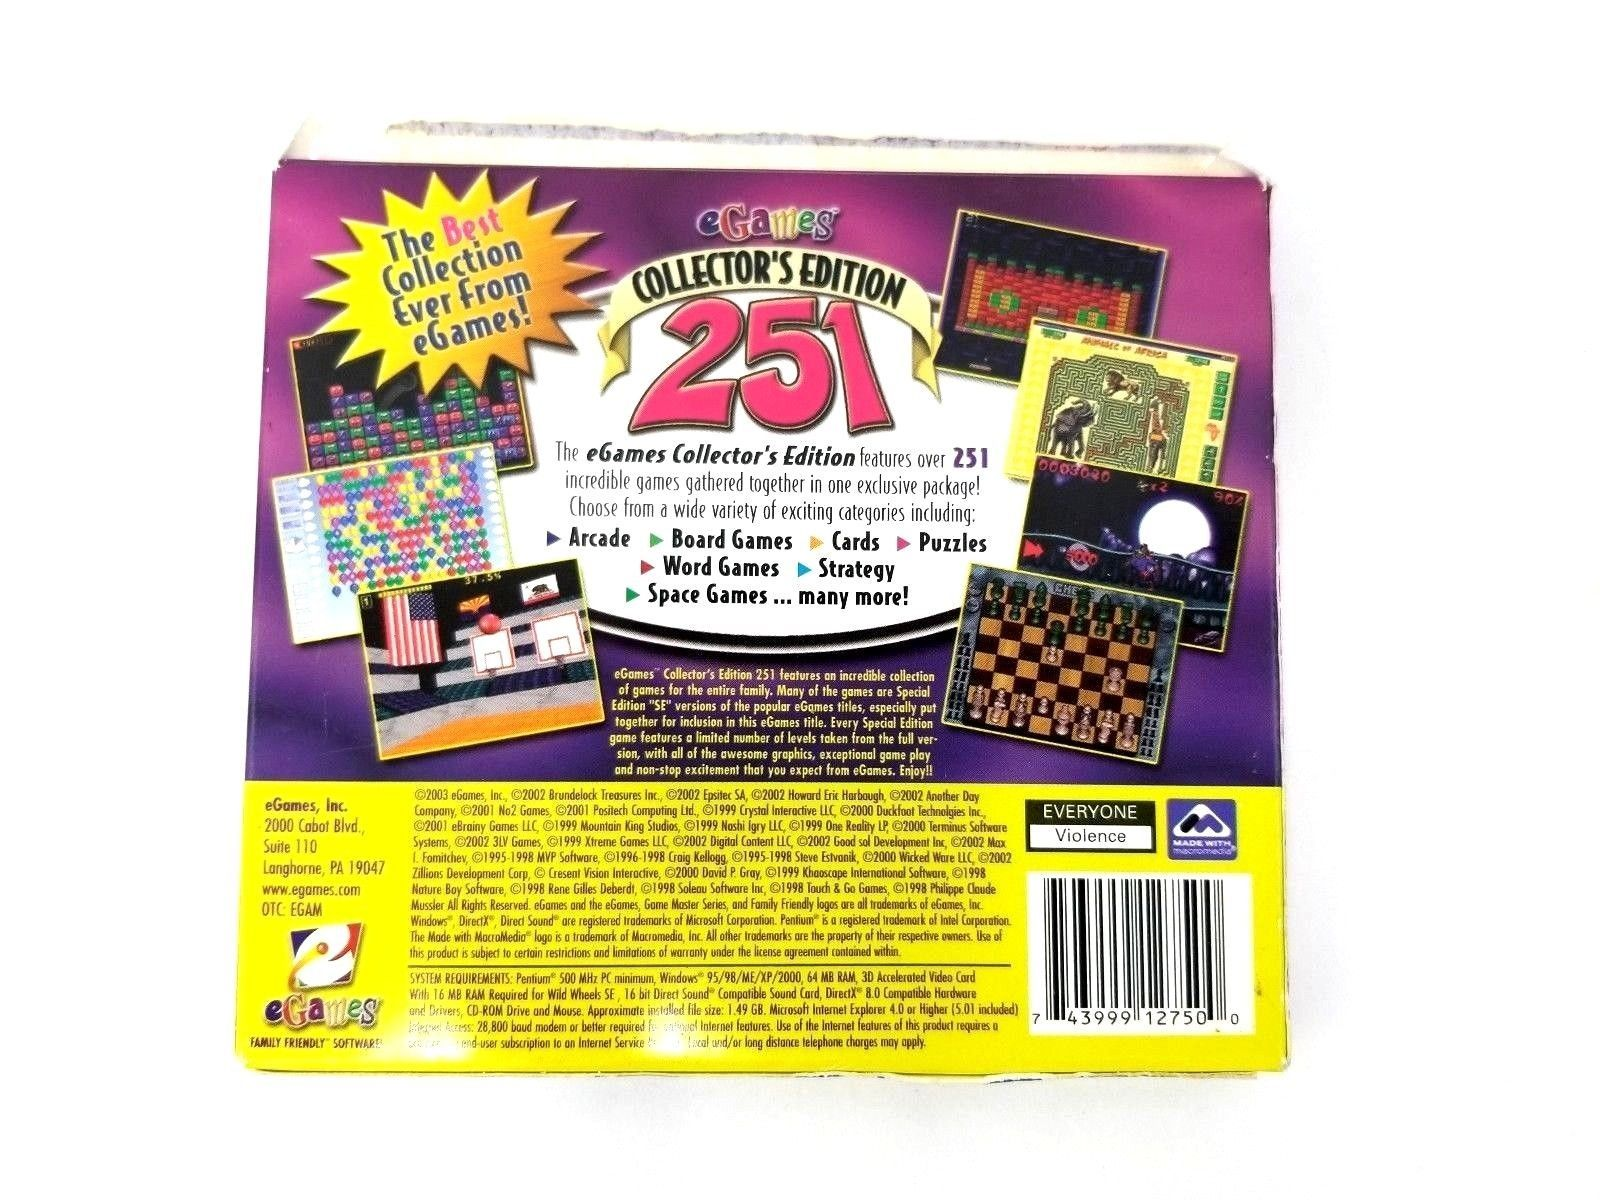 251 Awesome Games Puzzle Word Games PC Games 2003 Collector's Edition New